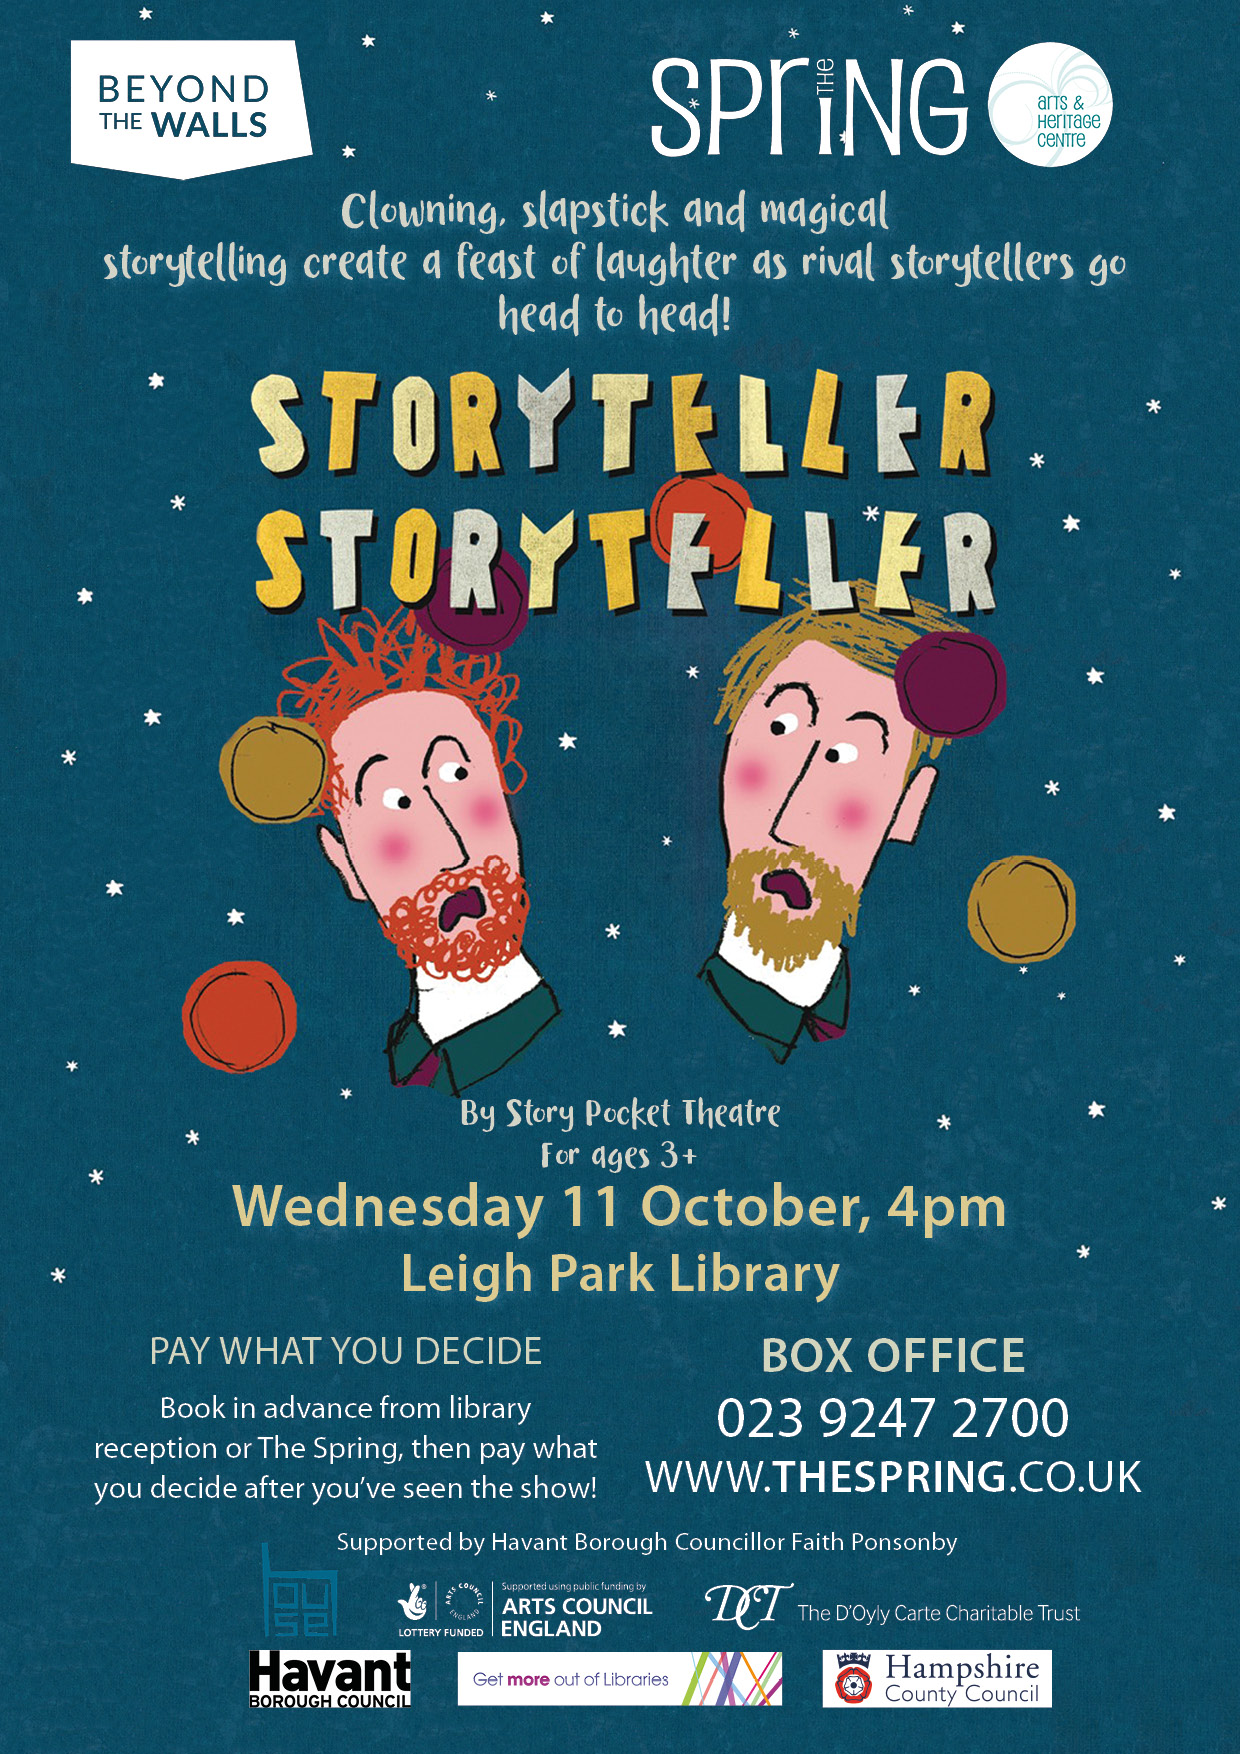 Storyteller, Storyteller at Leigh Park Library